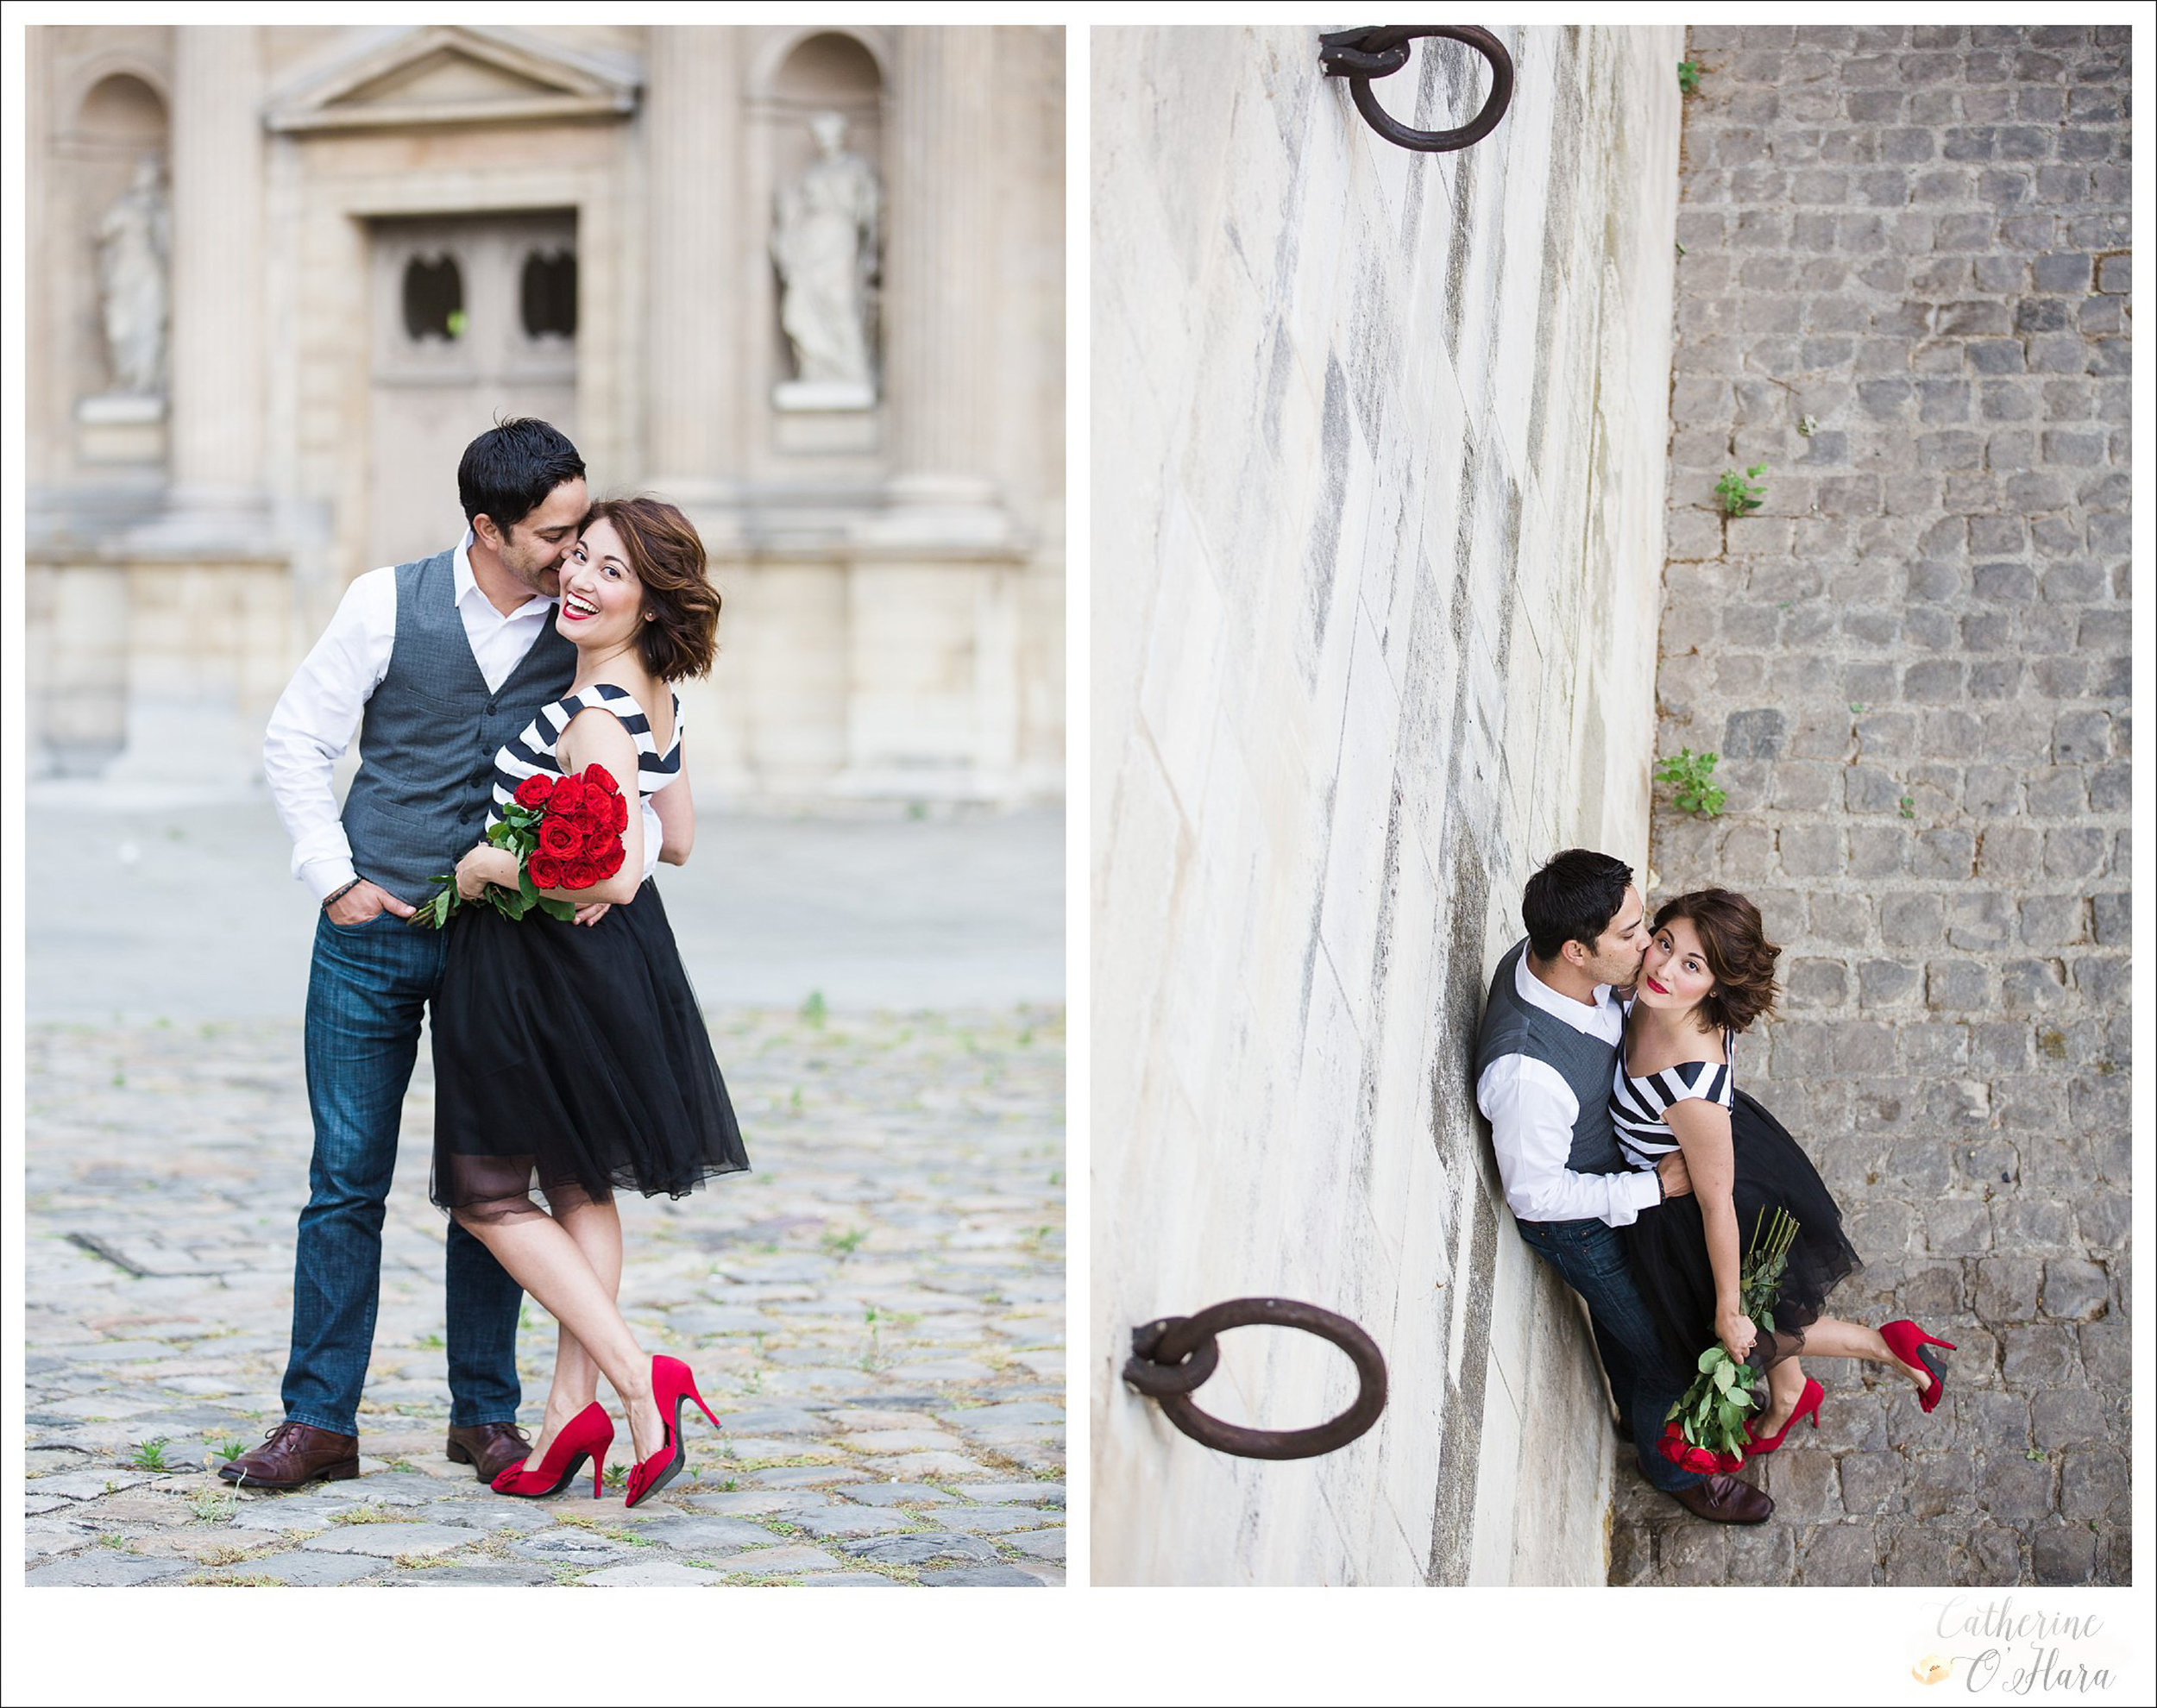 12-paris-engagement-photographer-france.jpg